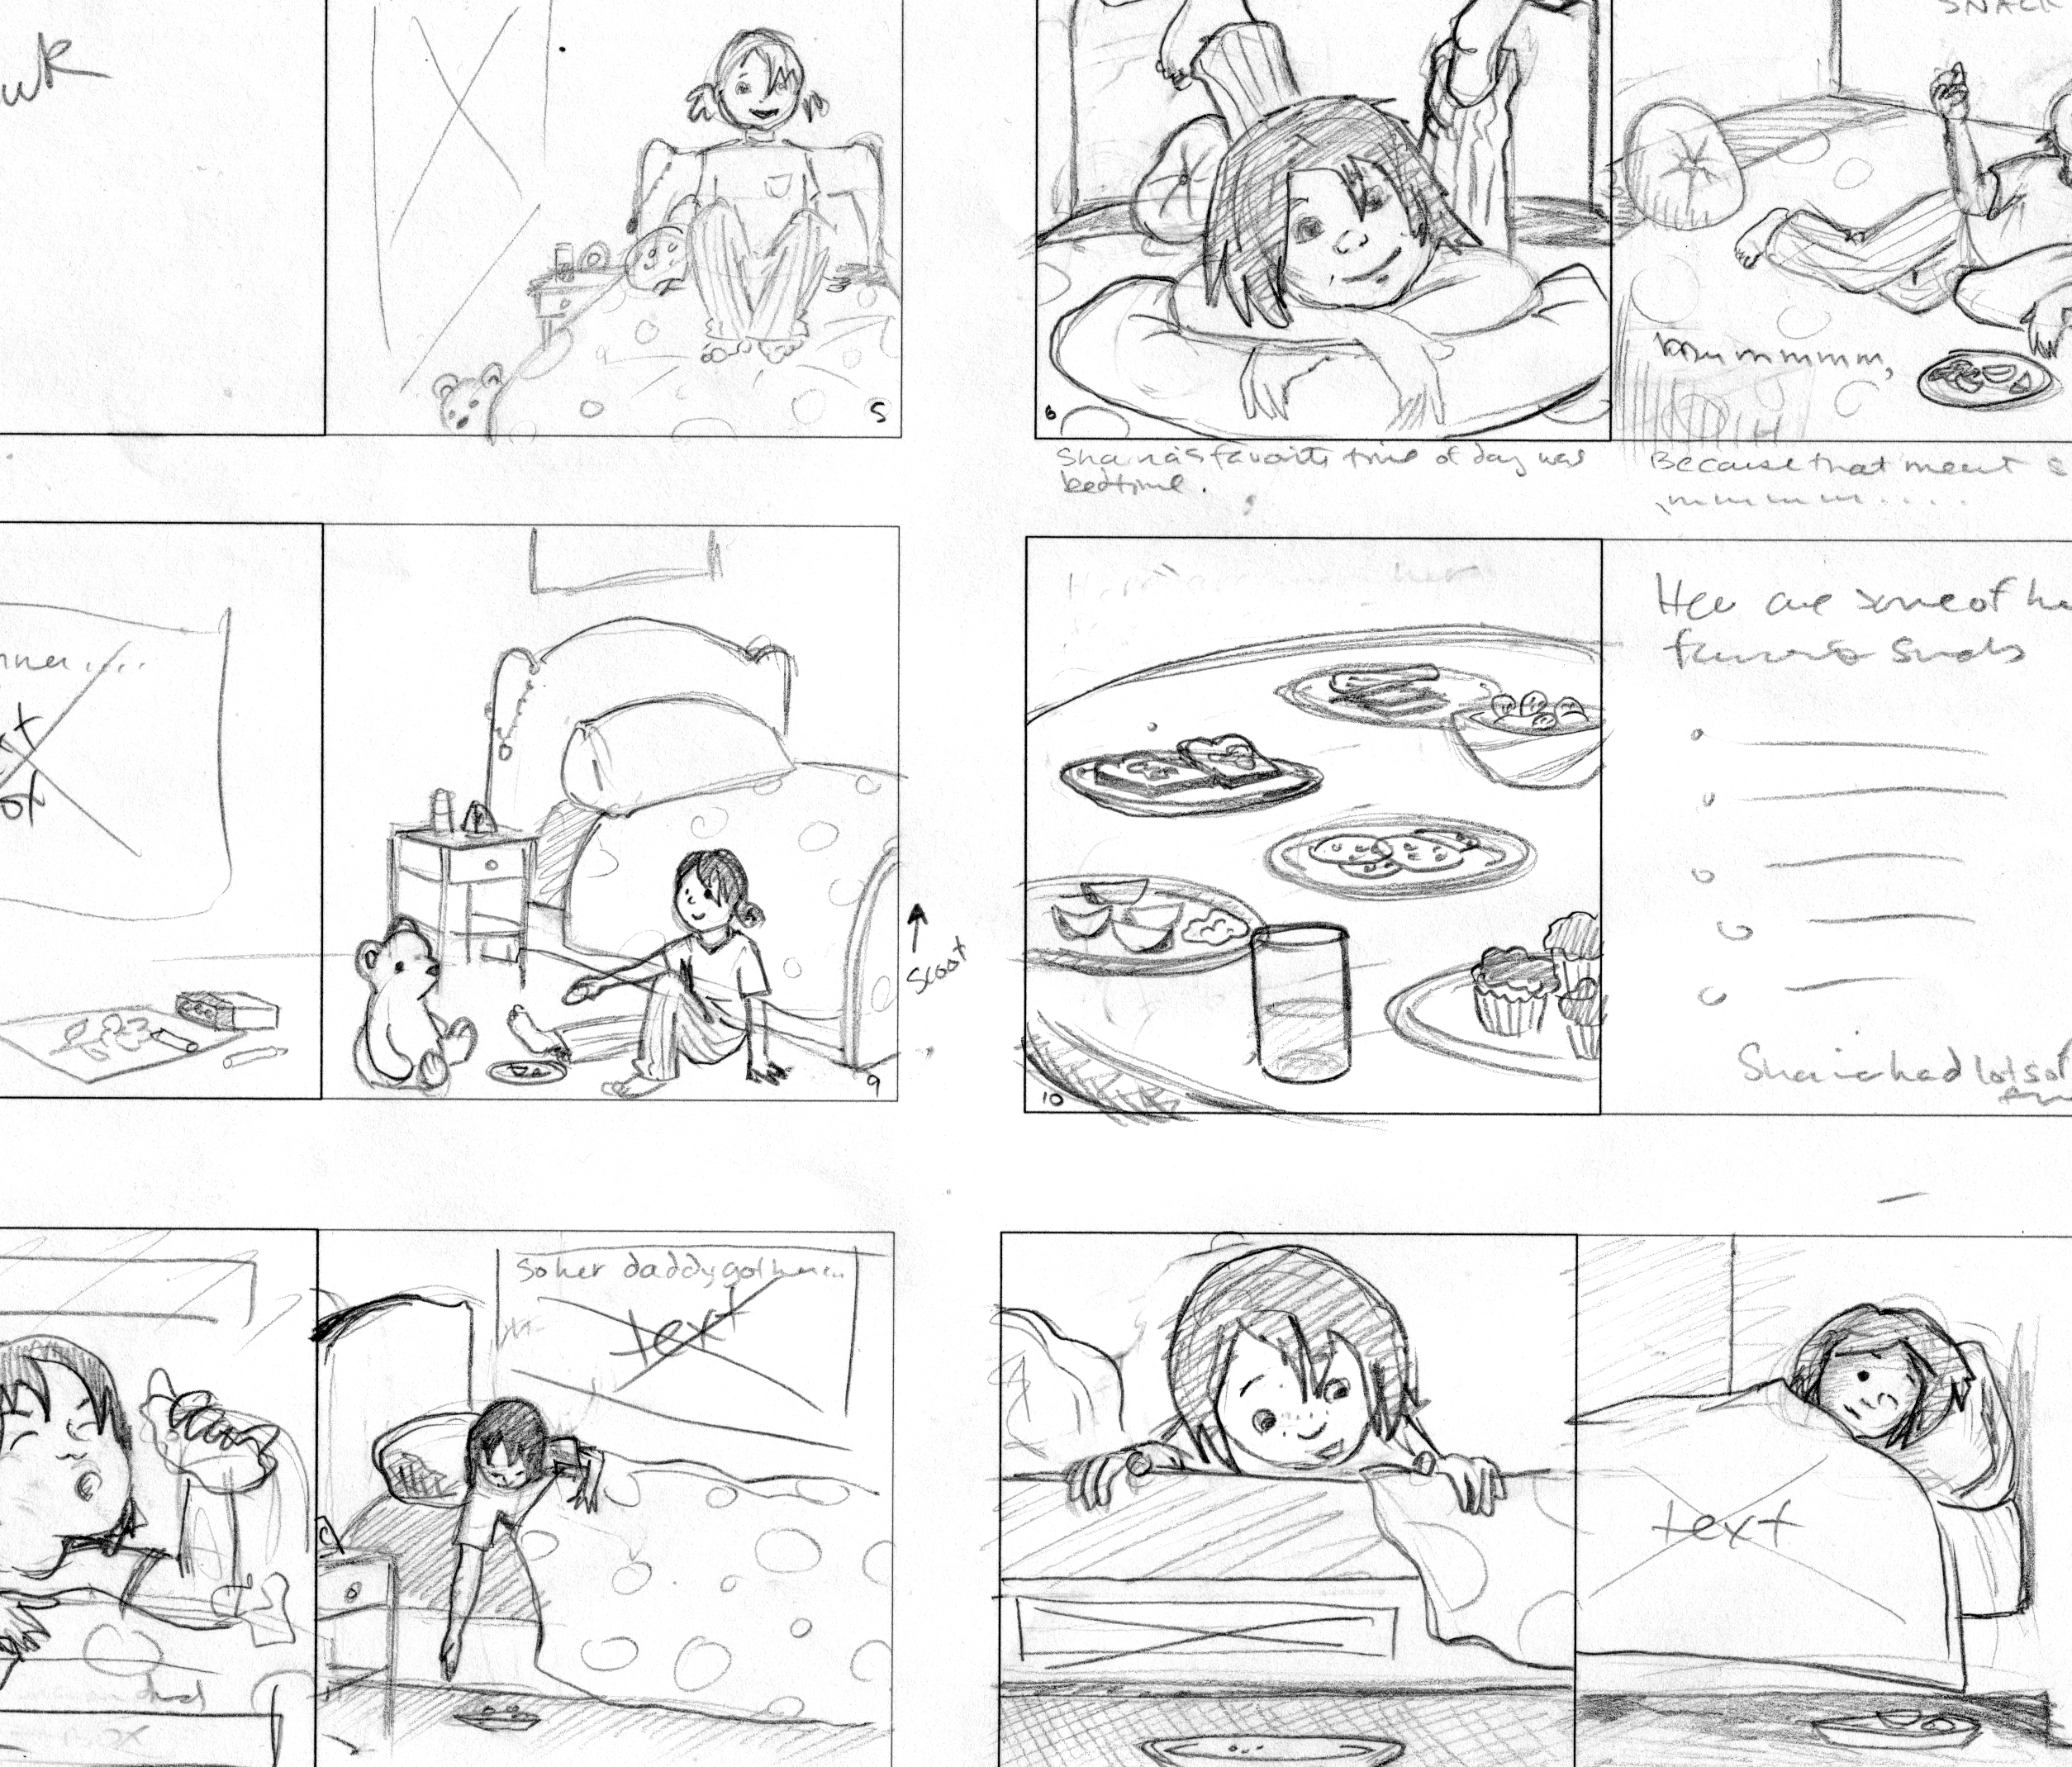 Storyboard for 'Shaina and the Snackit' by Tim Mueller, 2010